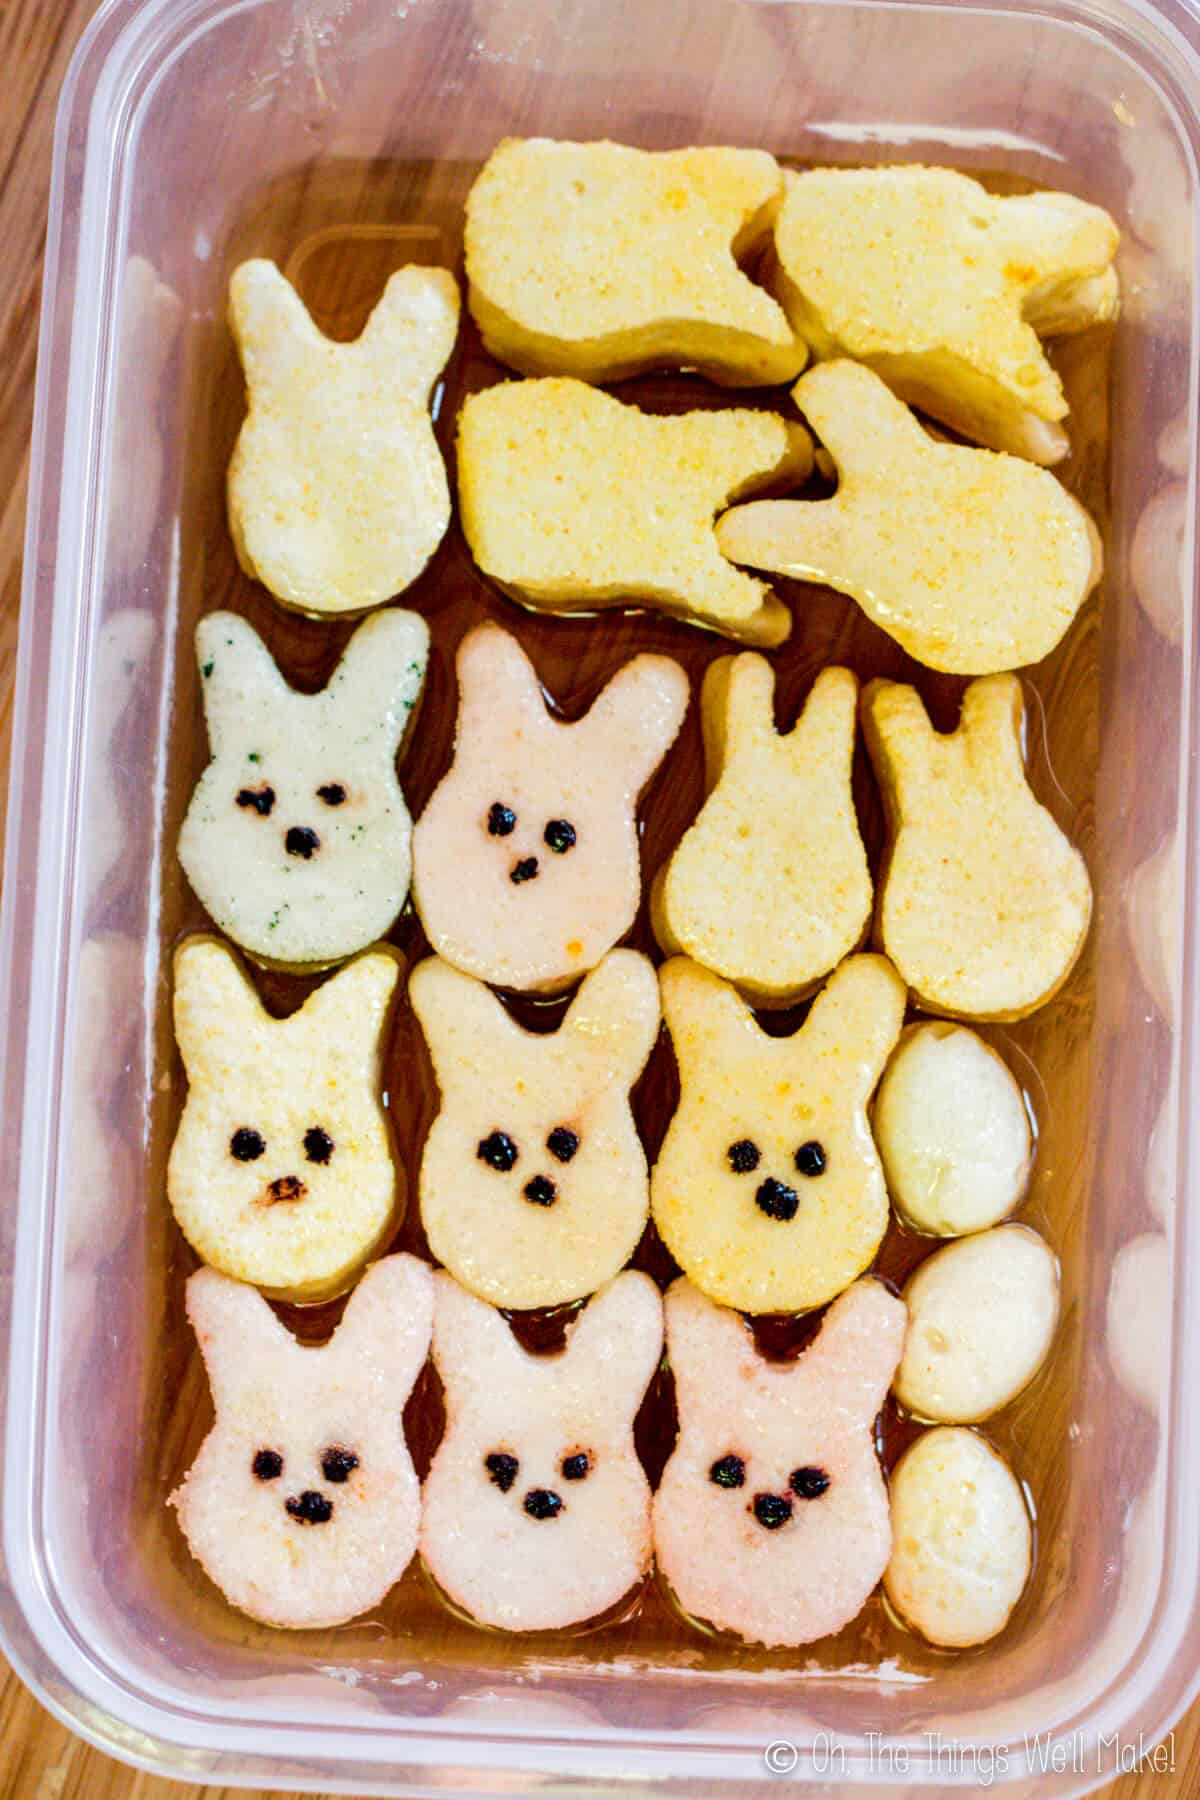 container filled with homemade peeps whose sugar has melted into a syrup